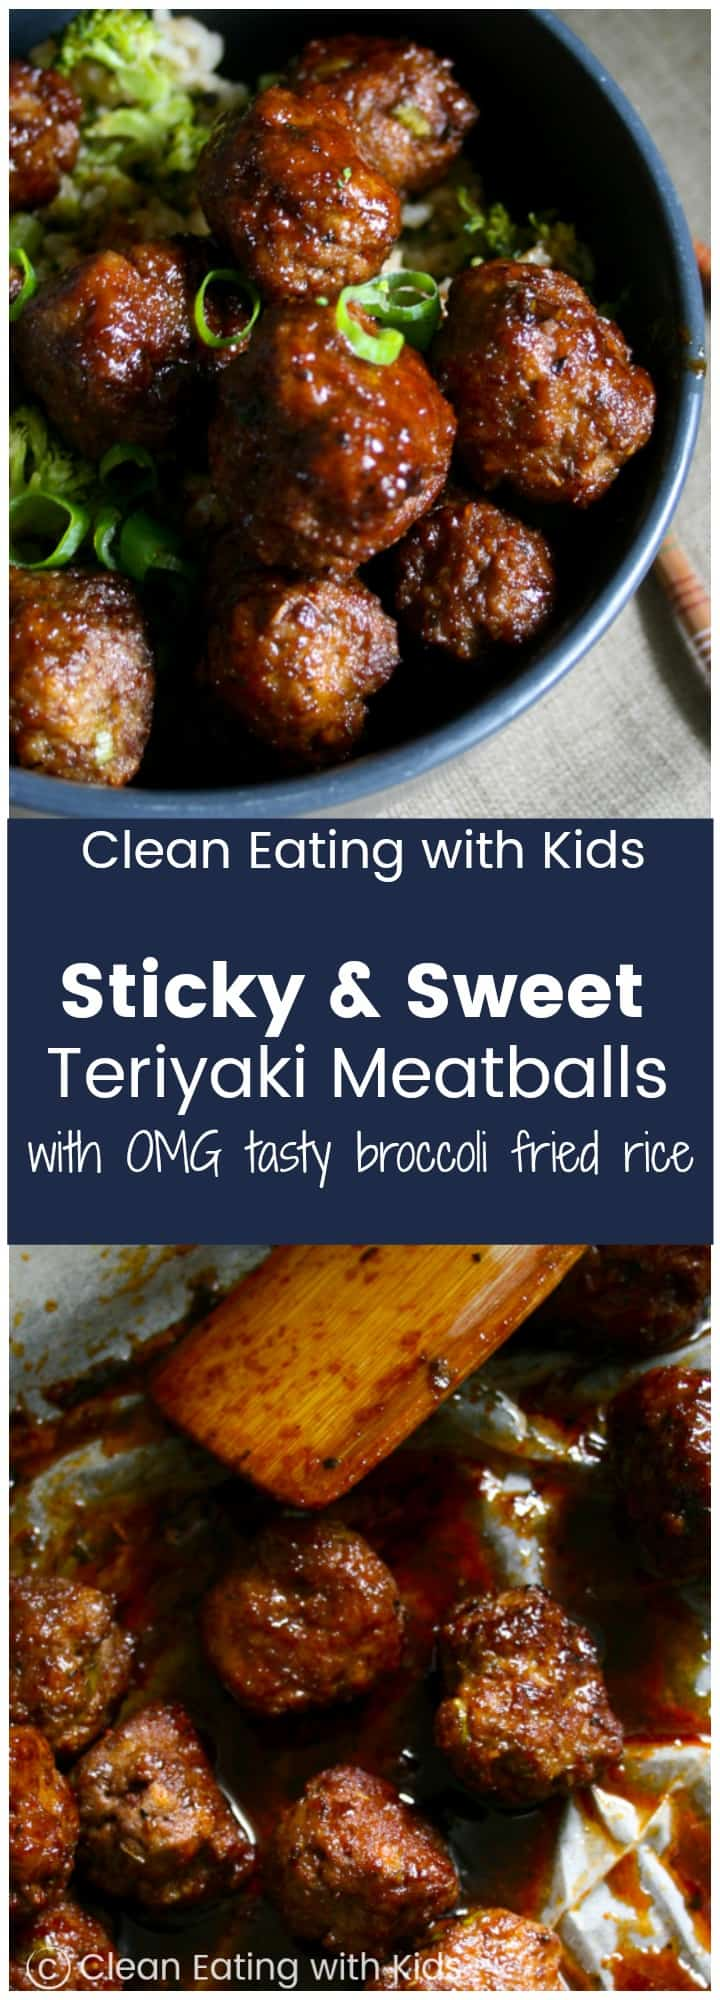 Sweet & Sticky Teriyaki Meatballs piled on top of a really yummy broccoli fried rice.